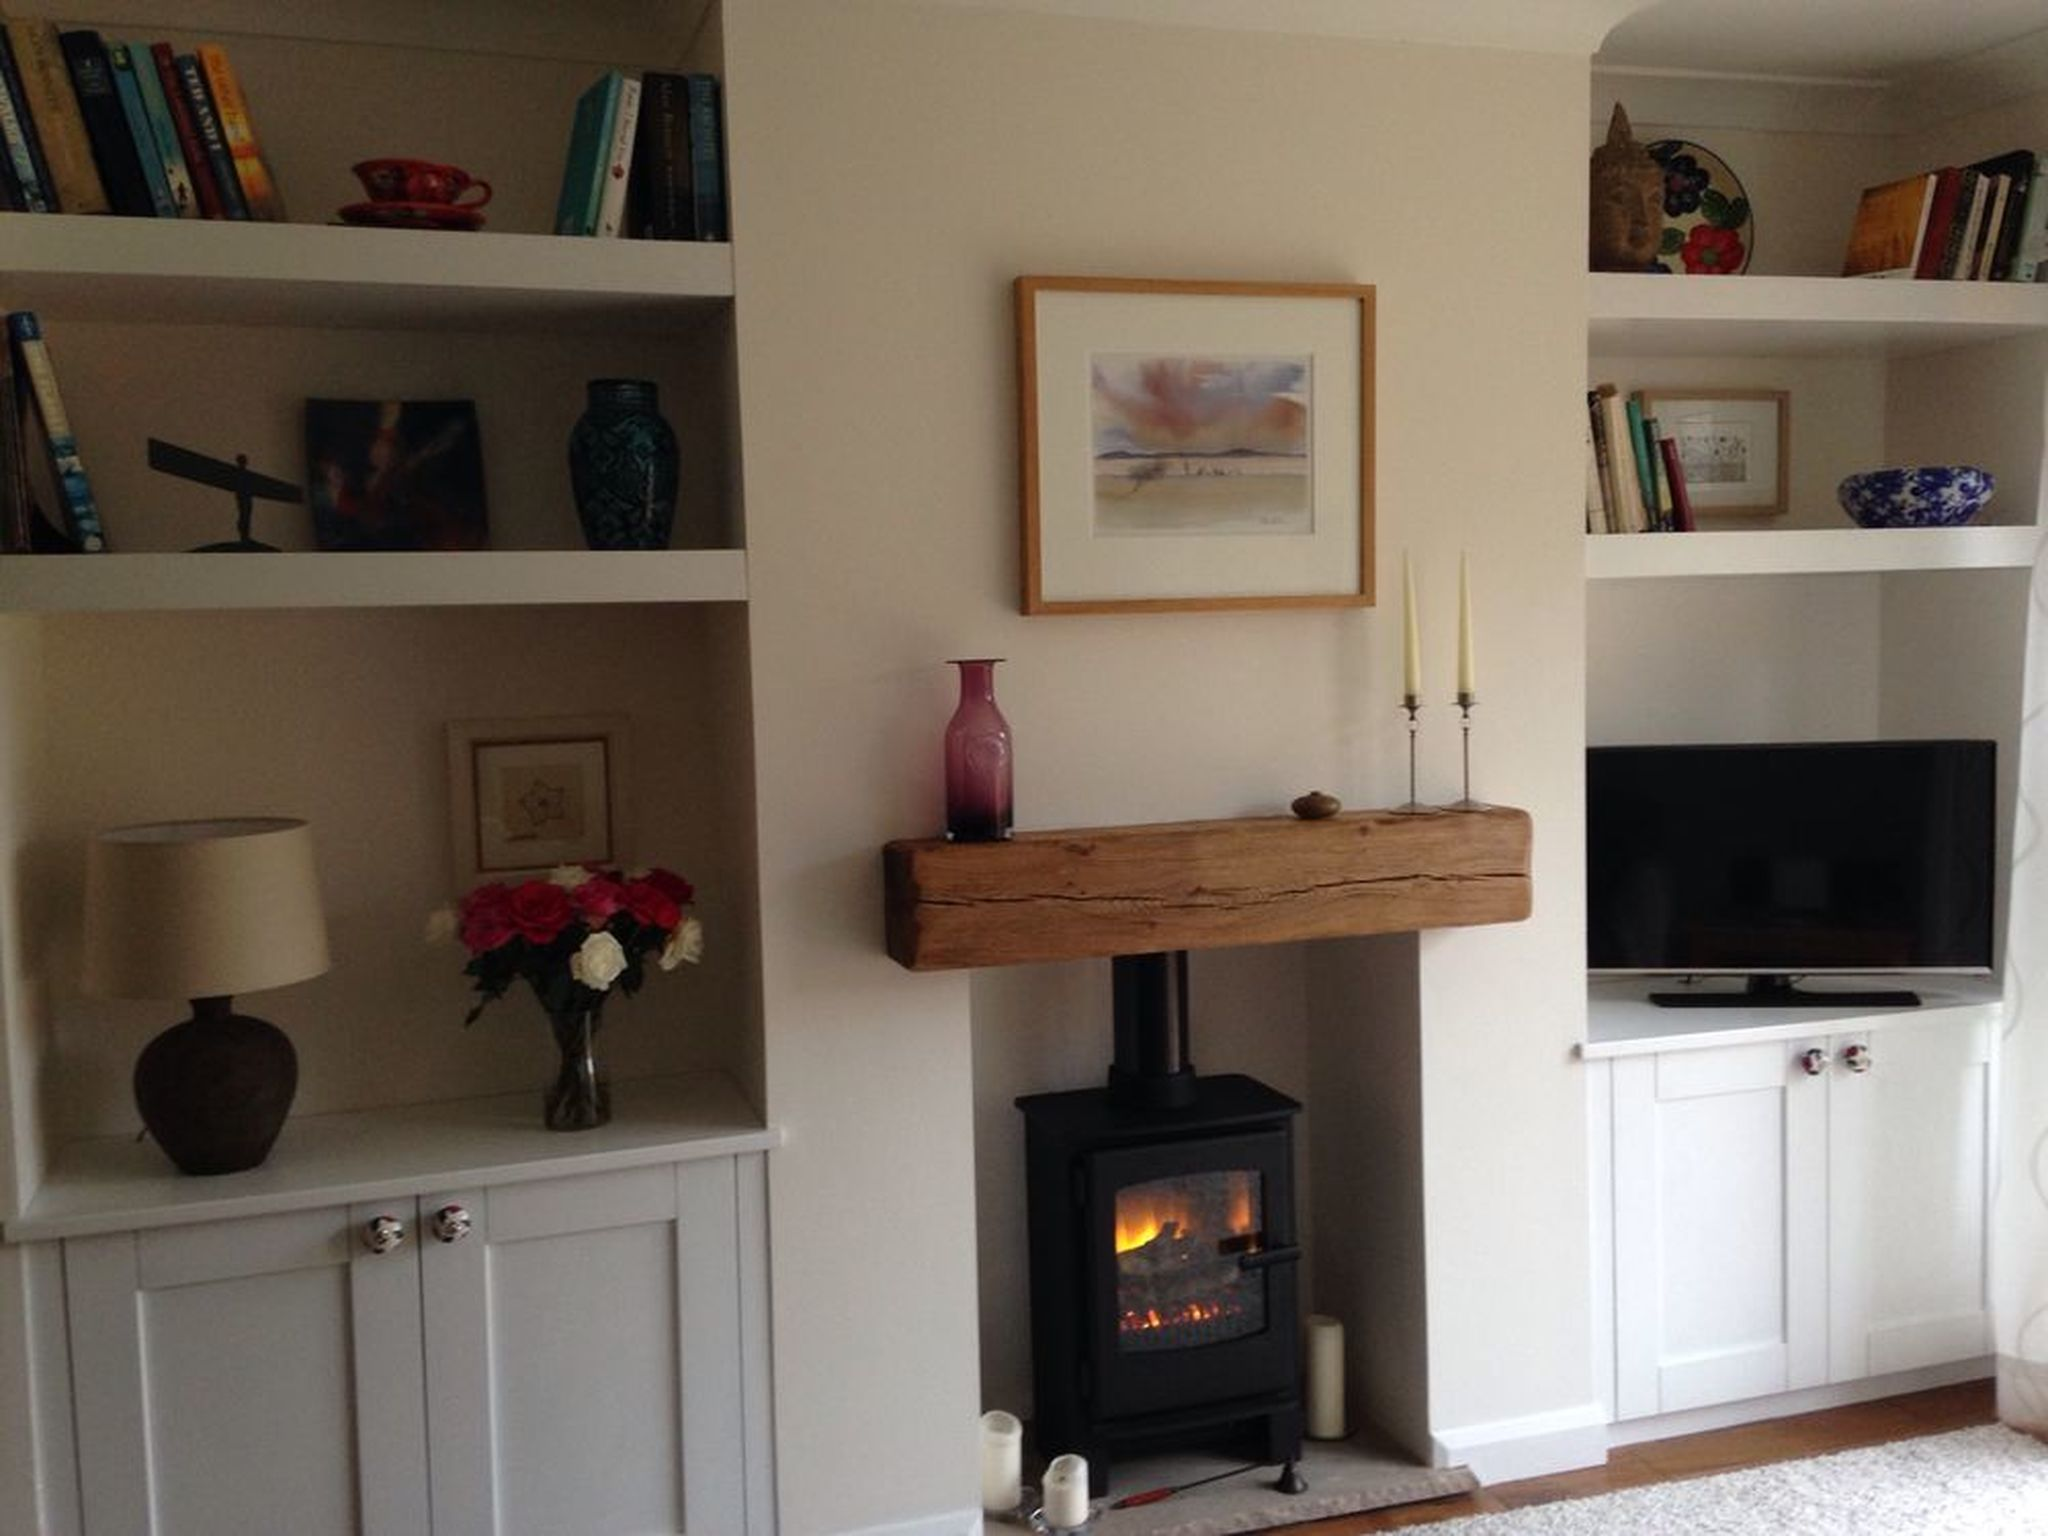 Super False Chimney Breast Job Of The Year 2018 Competition Closed Complete Home Design Collection Epsylindsey Bellcom